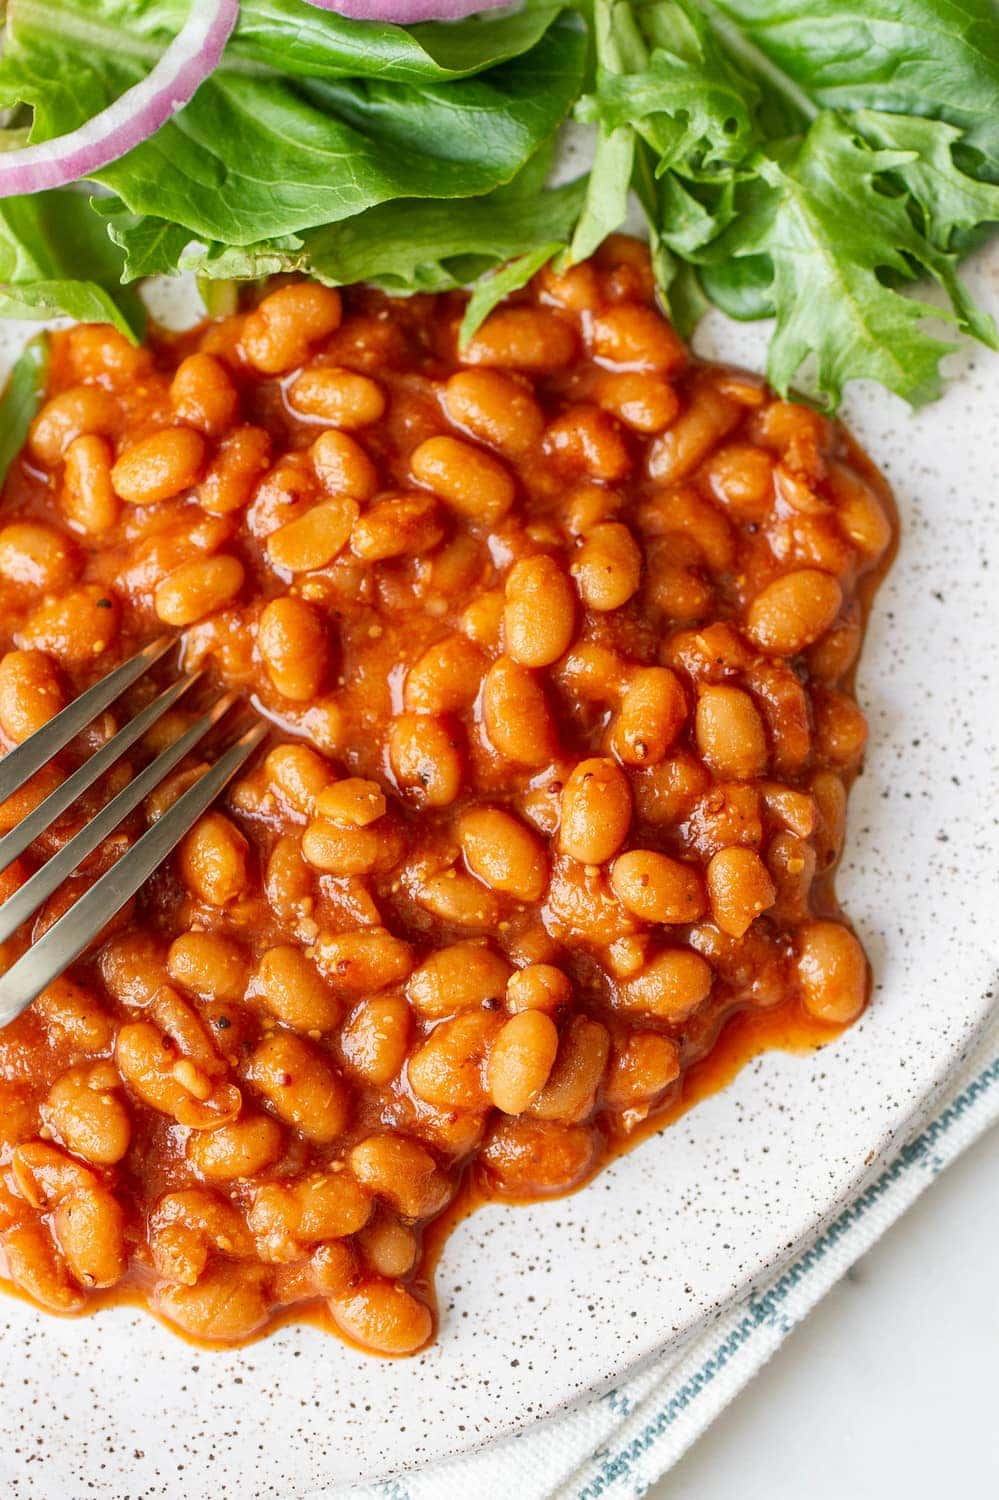 baked beans on a plate with fork